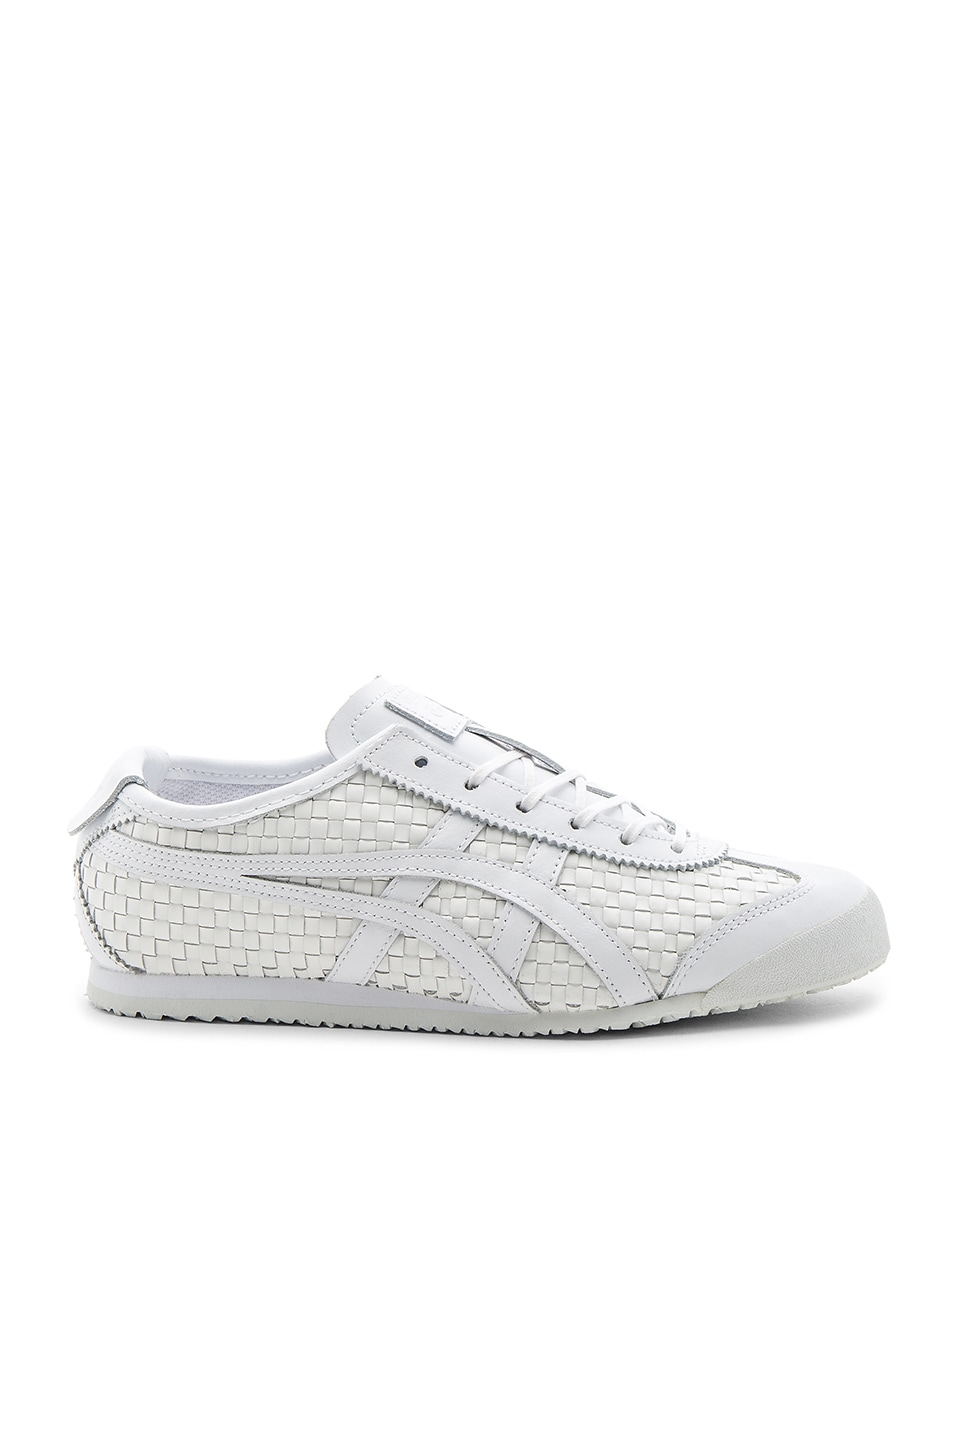 Onitsuka Tiger Mexico 66 Sneaker in White & White